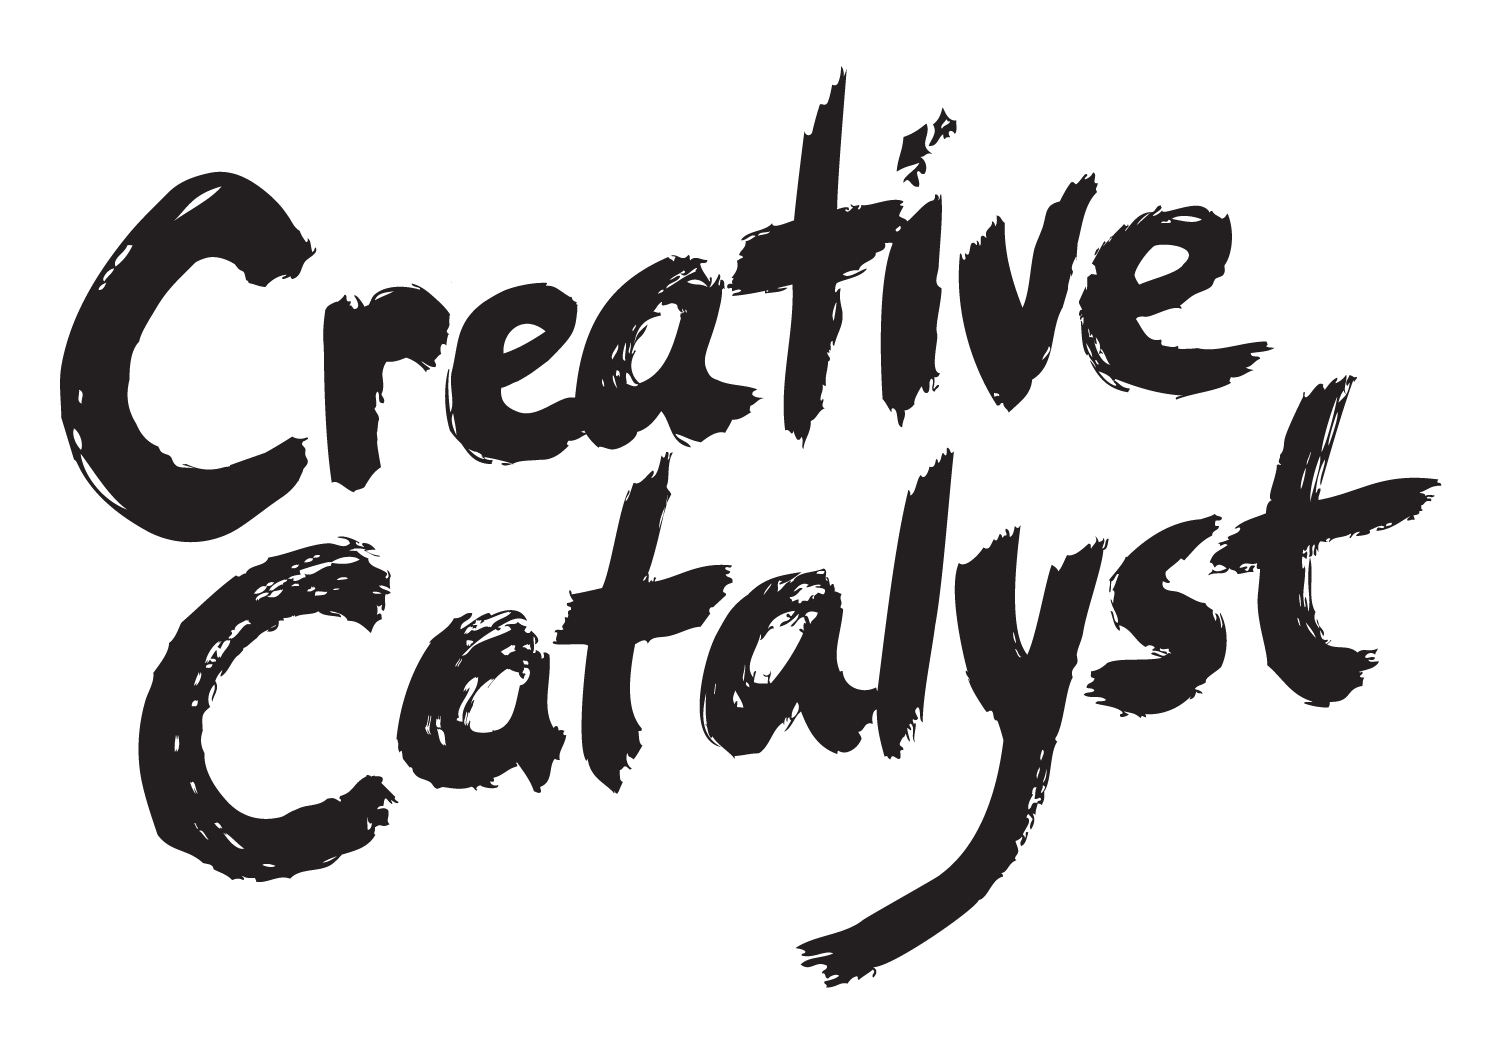 Creative Catalyst